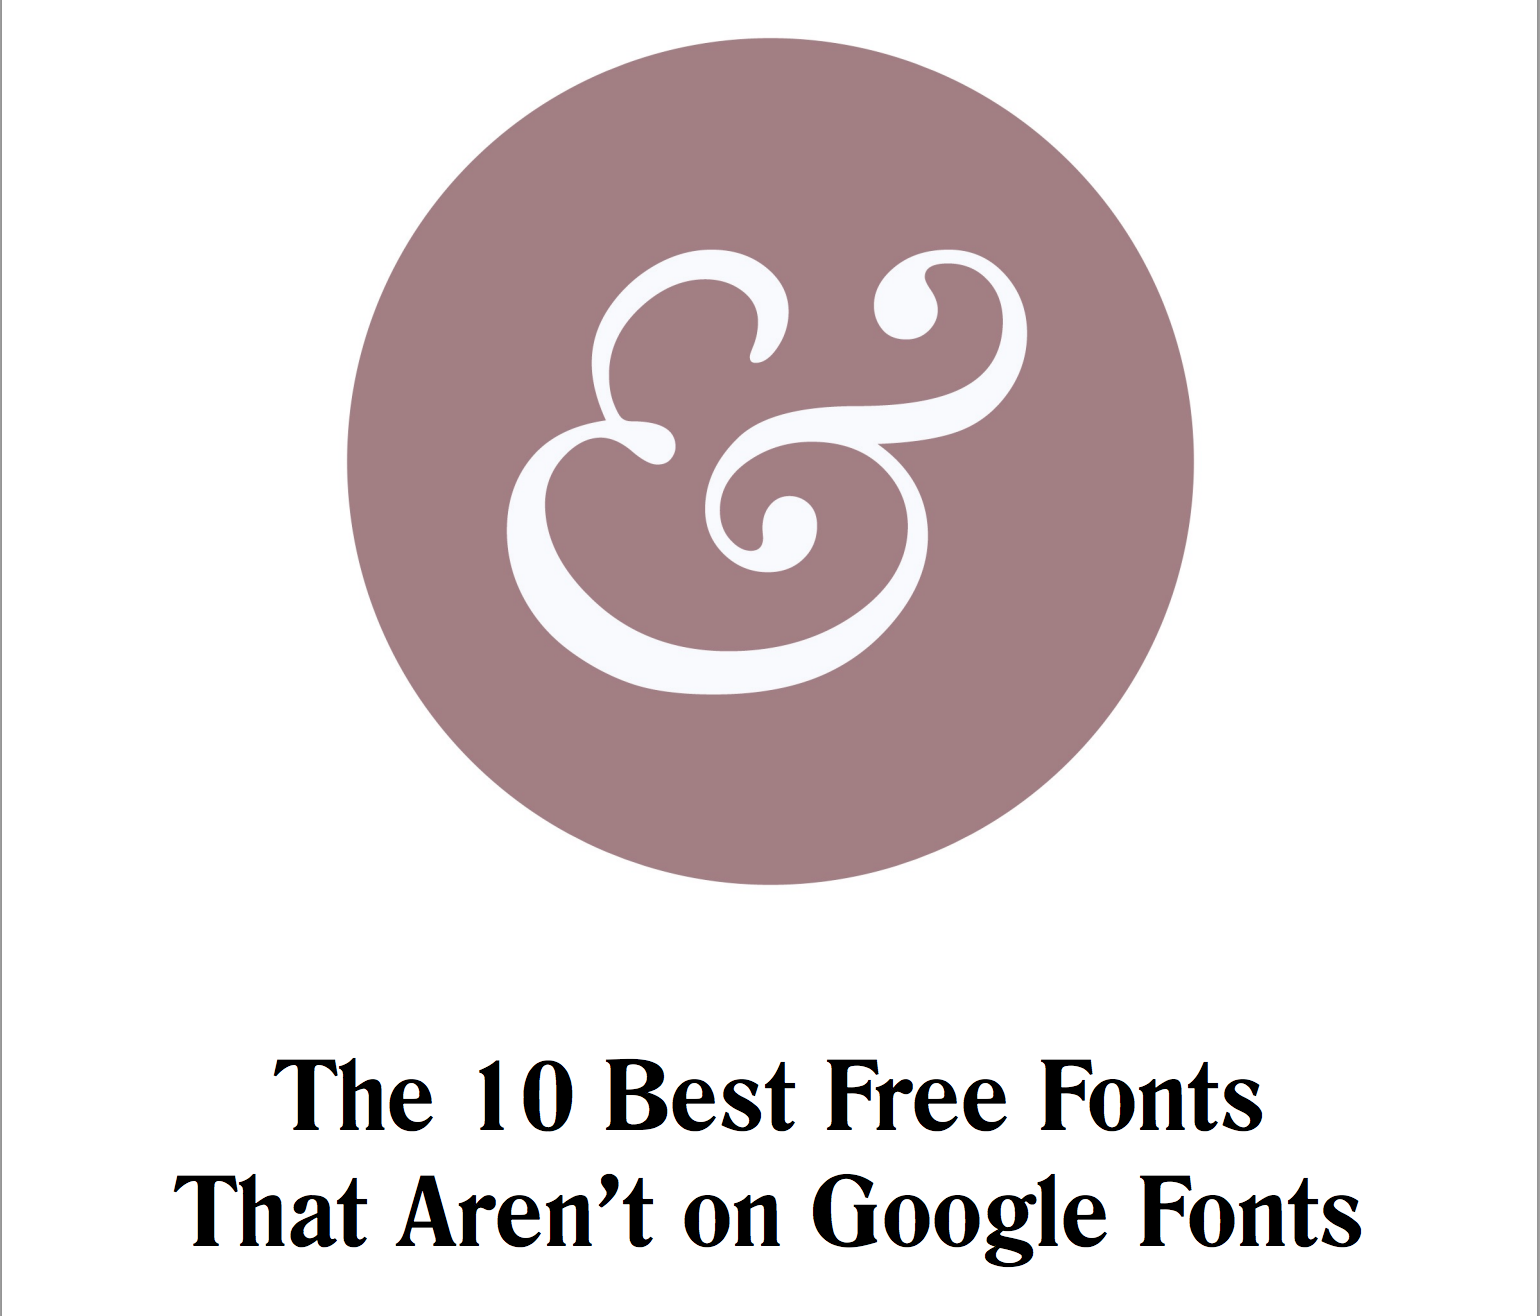 The 10 Best Free Fonts That Aren't on Google Fonts